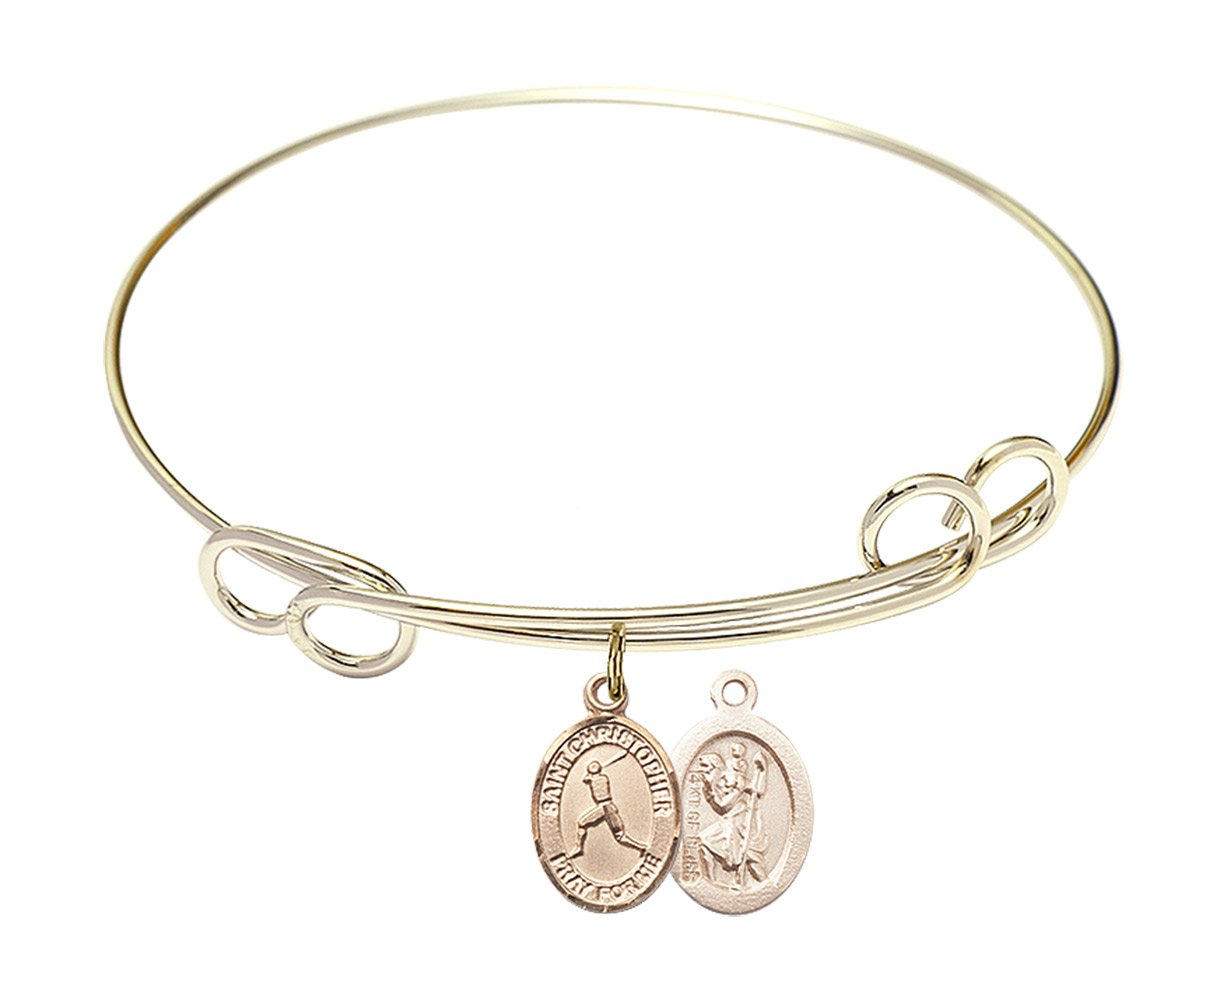 7 1/2 inch Round Double Loop Bangle Bracelet w/St. Christopher/Baseball in Gold-Filled